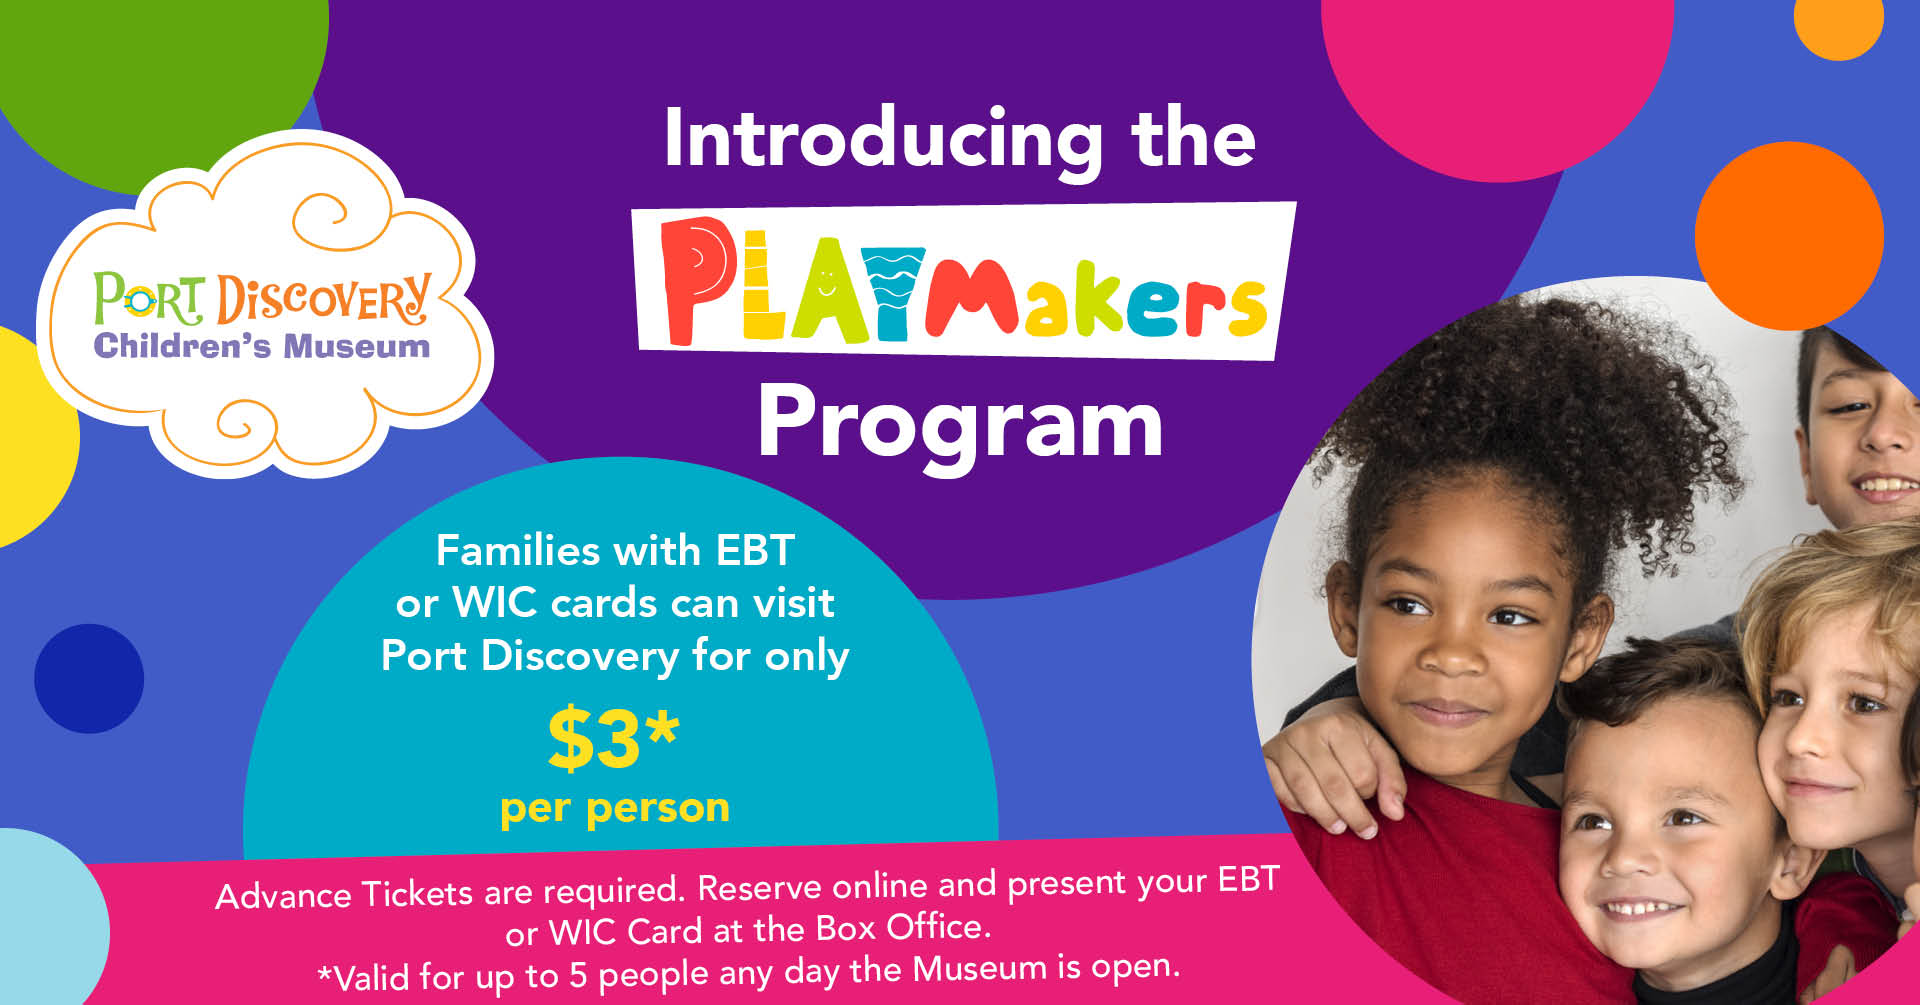 Introducing the PlayMaker Program. Families with EBT or WIC Cards can visit Port Discovery for $3 per person. Restrictions apply